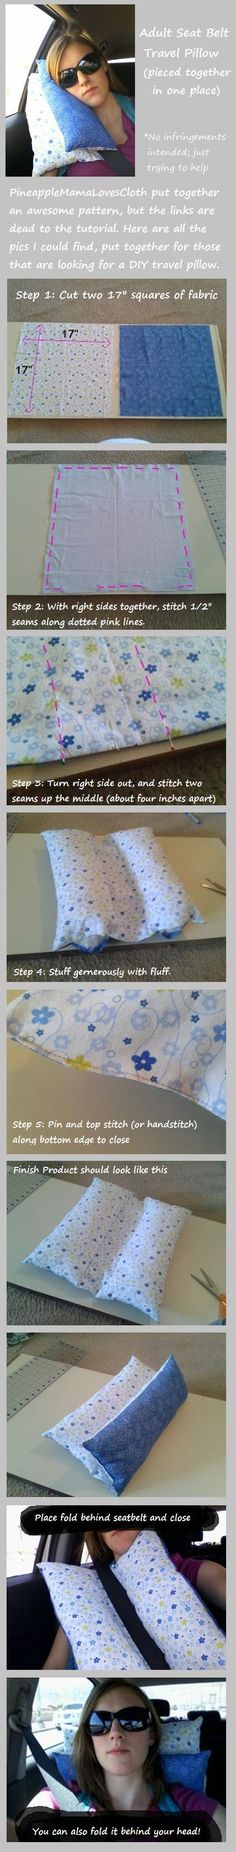 DIY Adult Seat Belt Travel Pillow Tutorial (by Pineapple Mama) | Easy instructions for car seatbelt pillow: